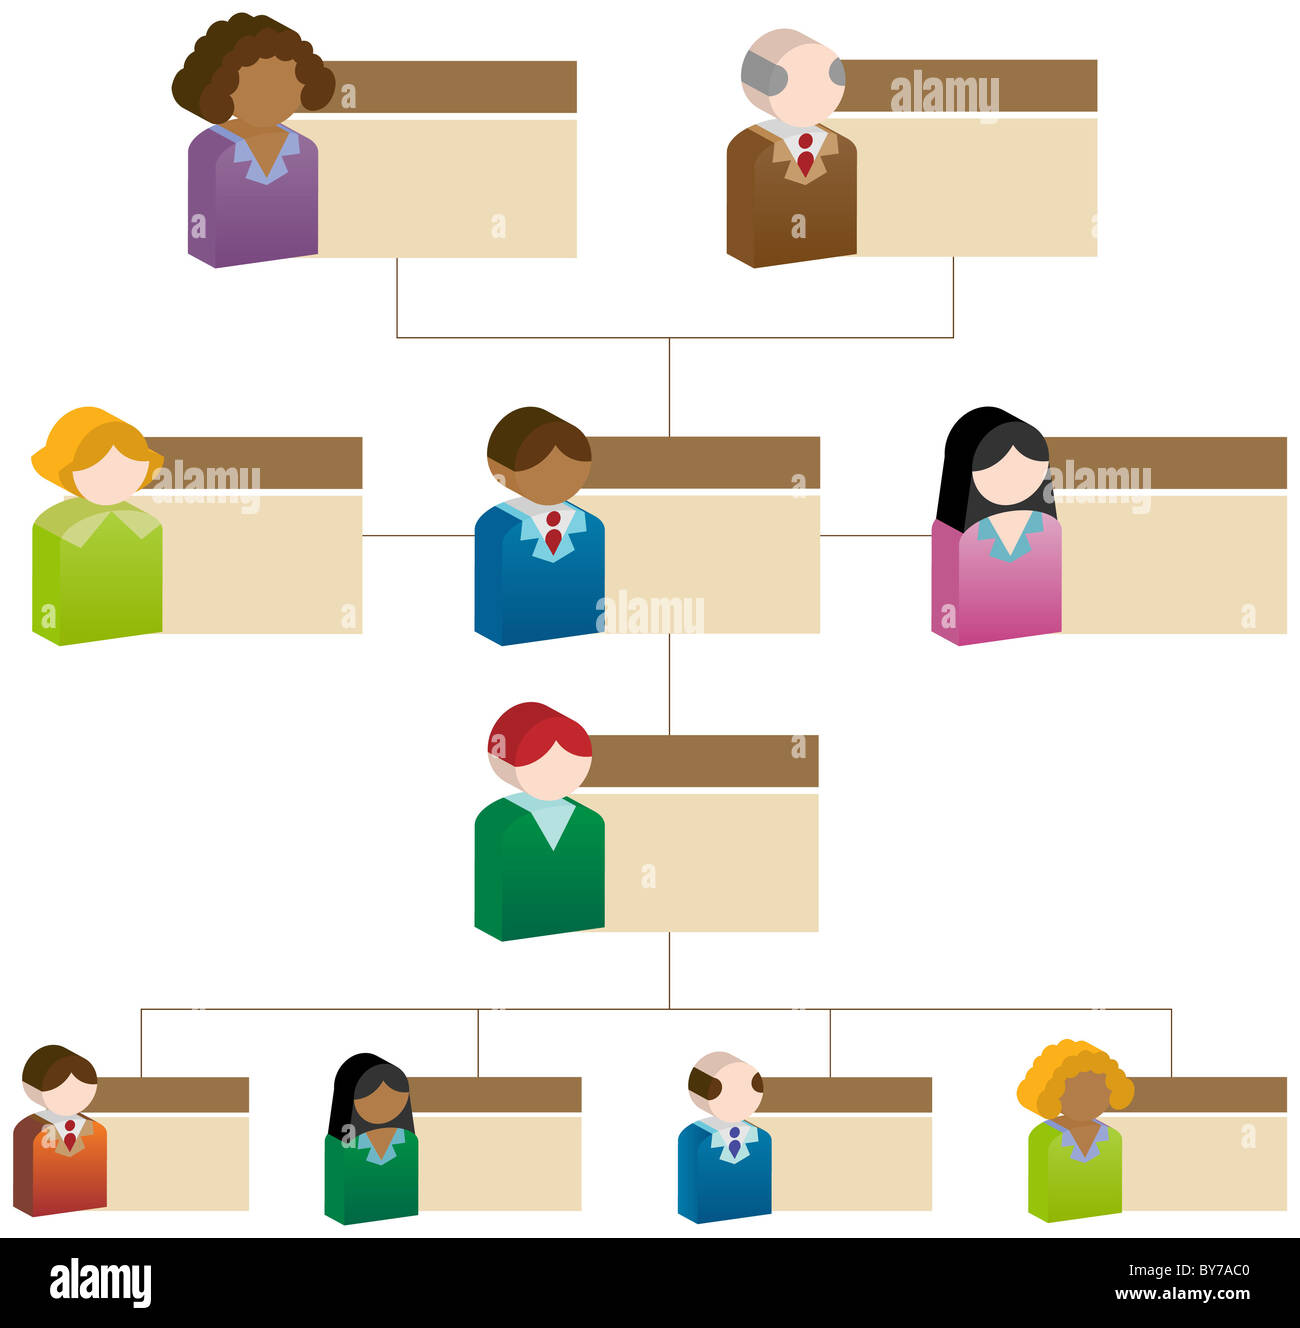 A 3D organizational chart based upon a diversity of its employees ...